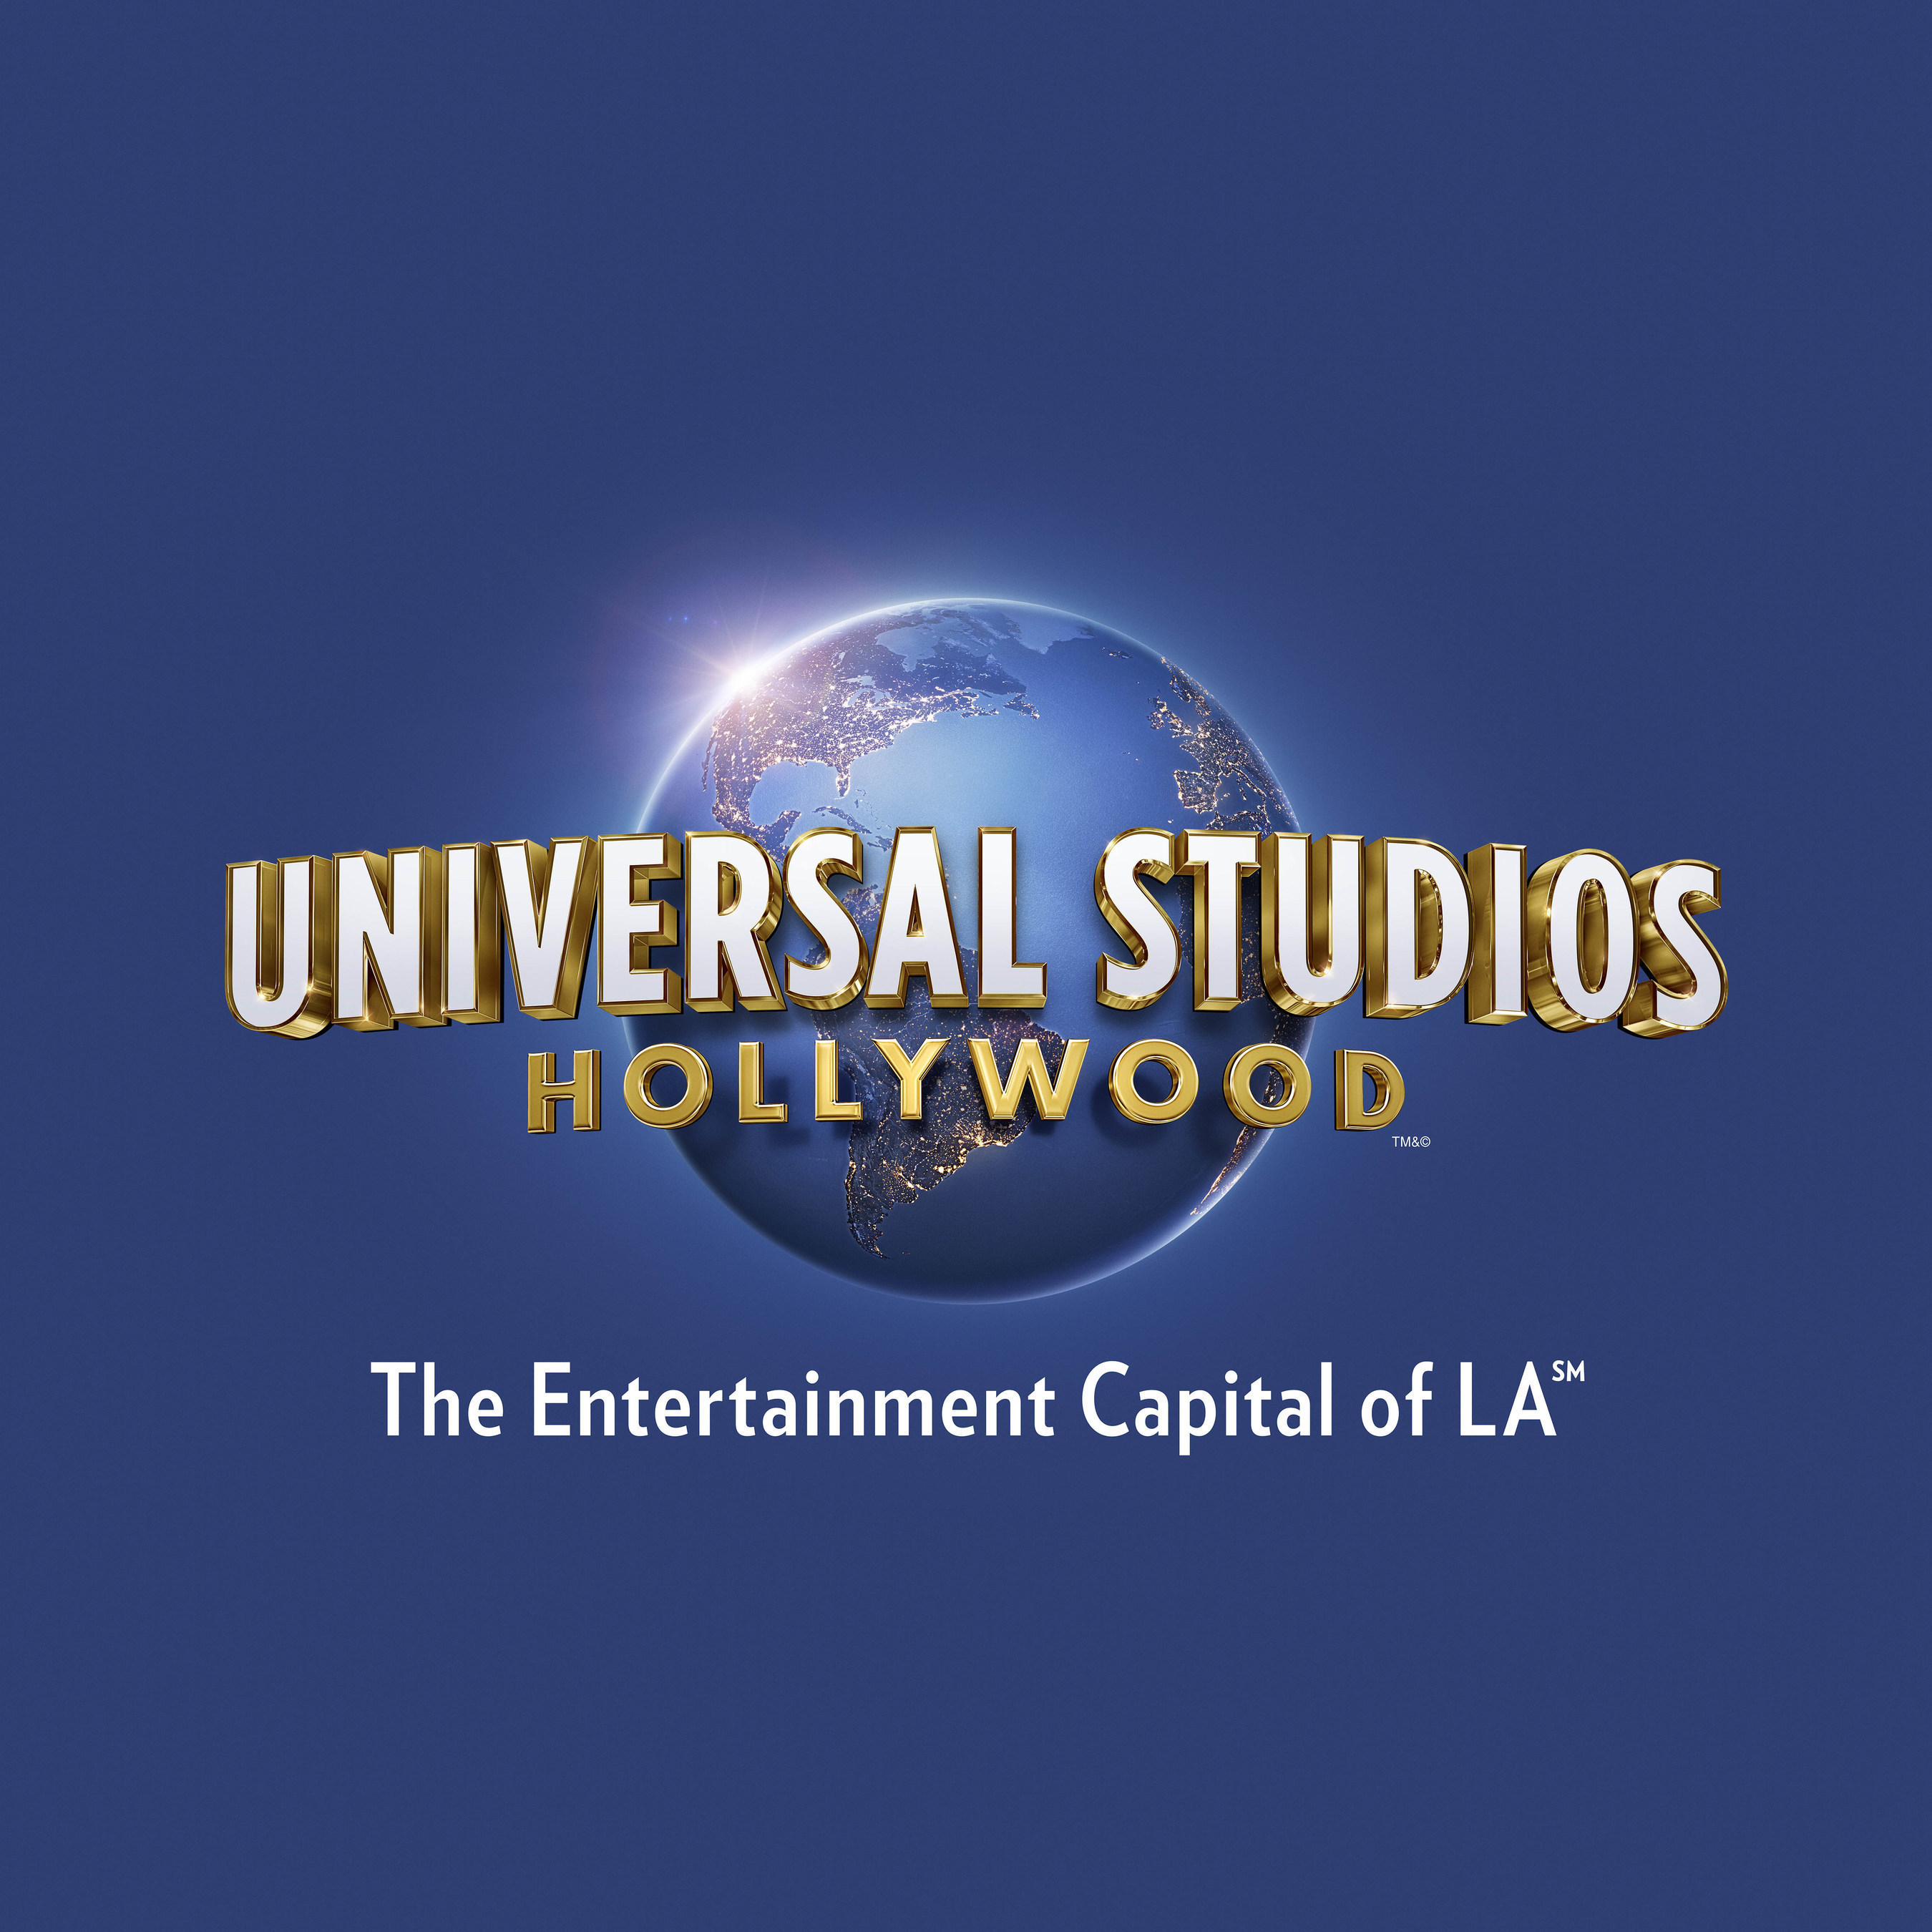 Universal Studios Hollywood Debuts Streamlined New Logo as The Entertainment Capital of L.A. Rolls Out the Red Carpet In Celebration of its Newly Transformed World-Class